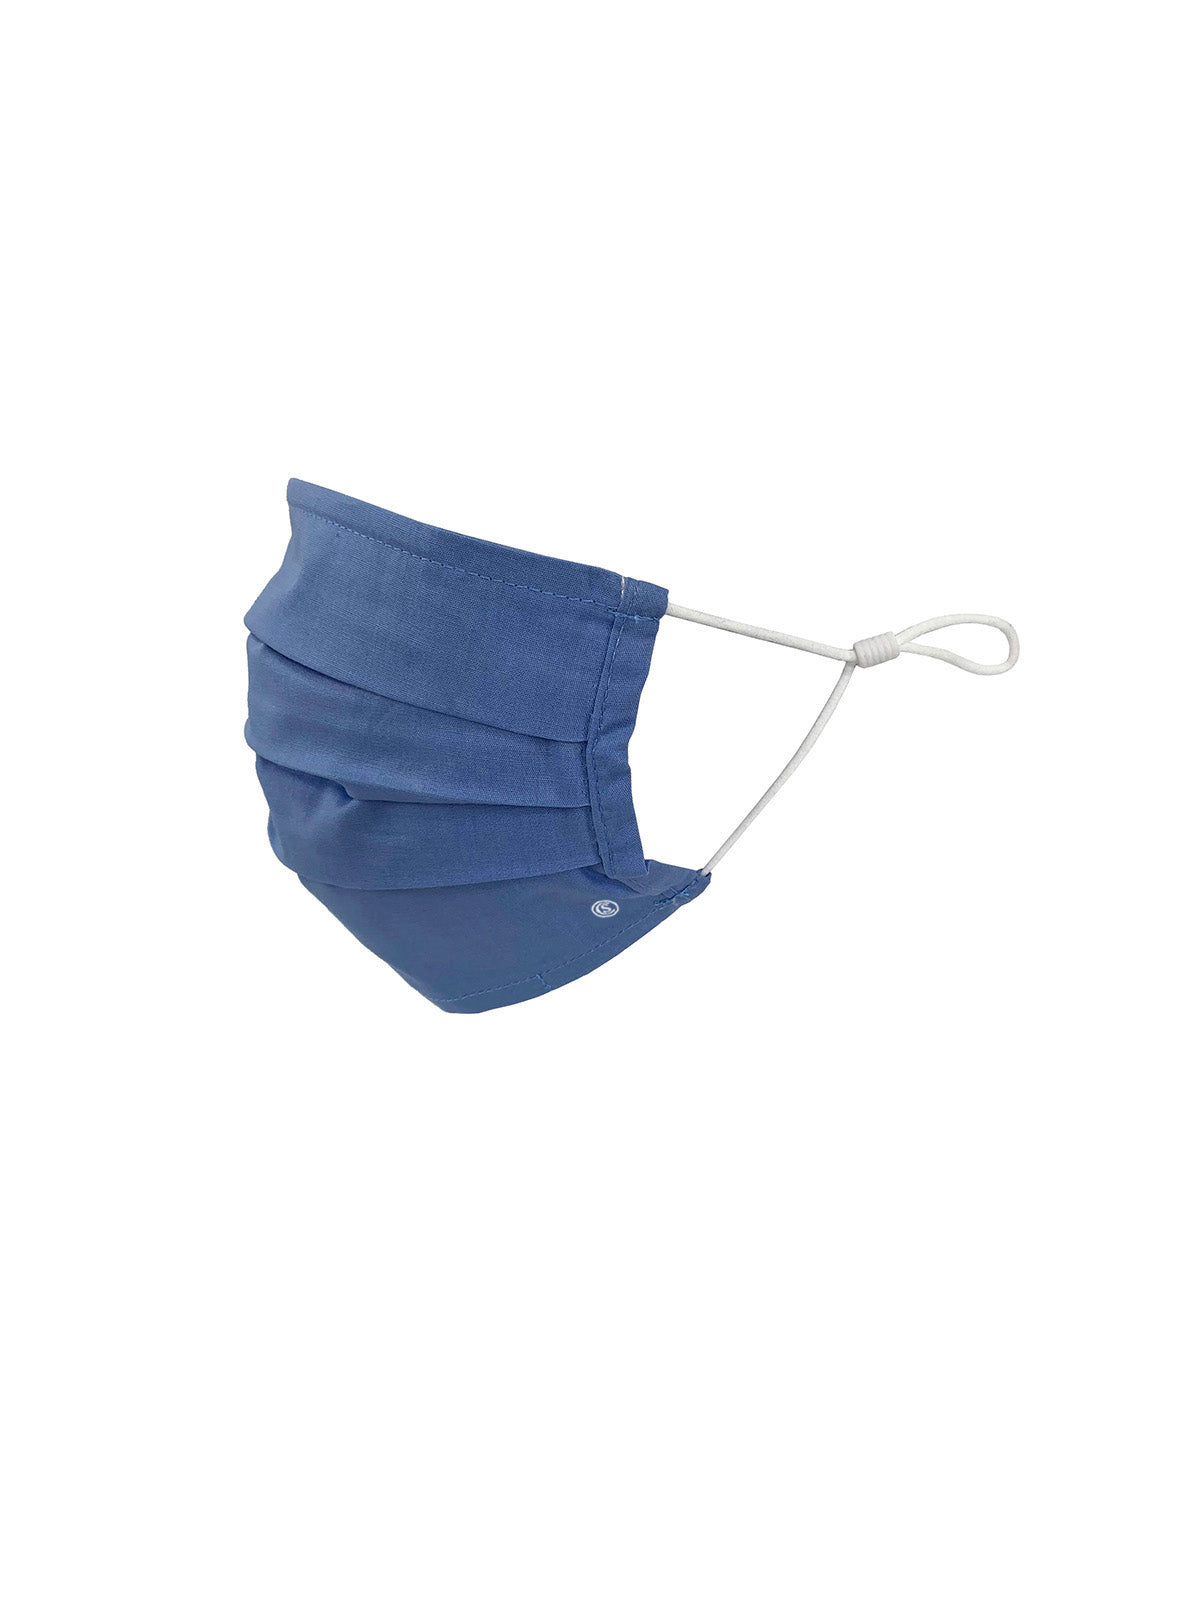 Essential Pleated Adult Face Mask 6 Pack-French Blue 2